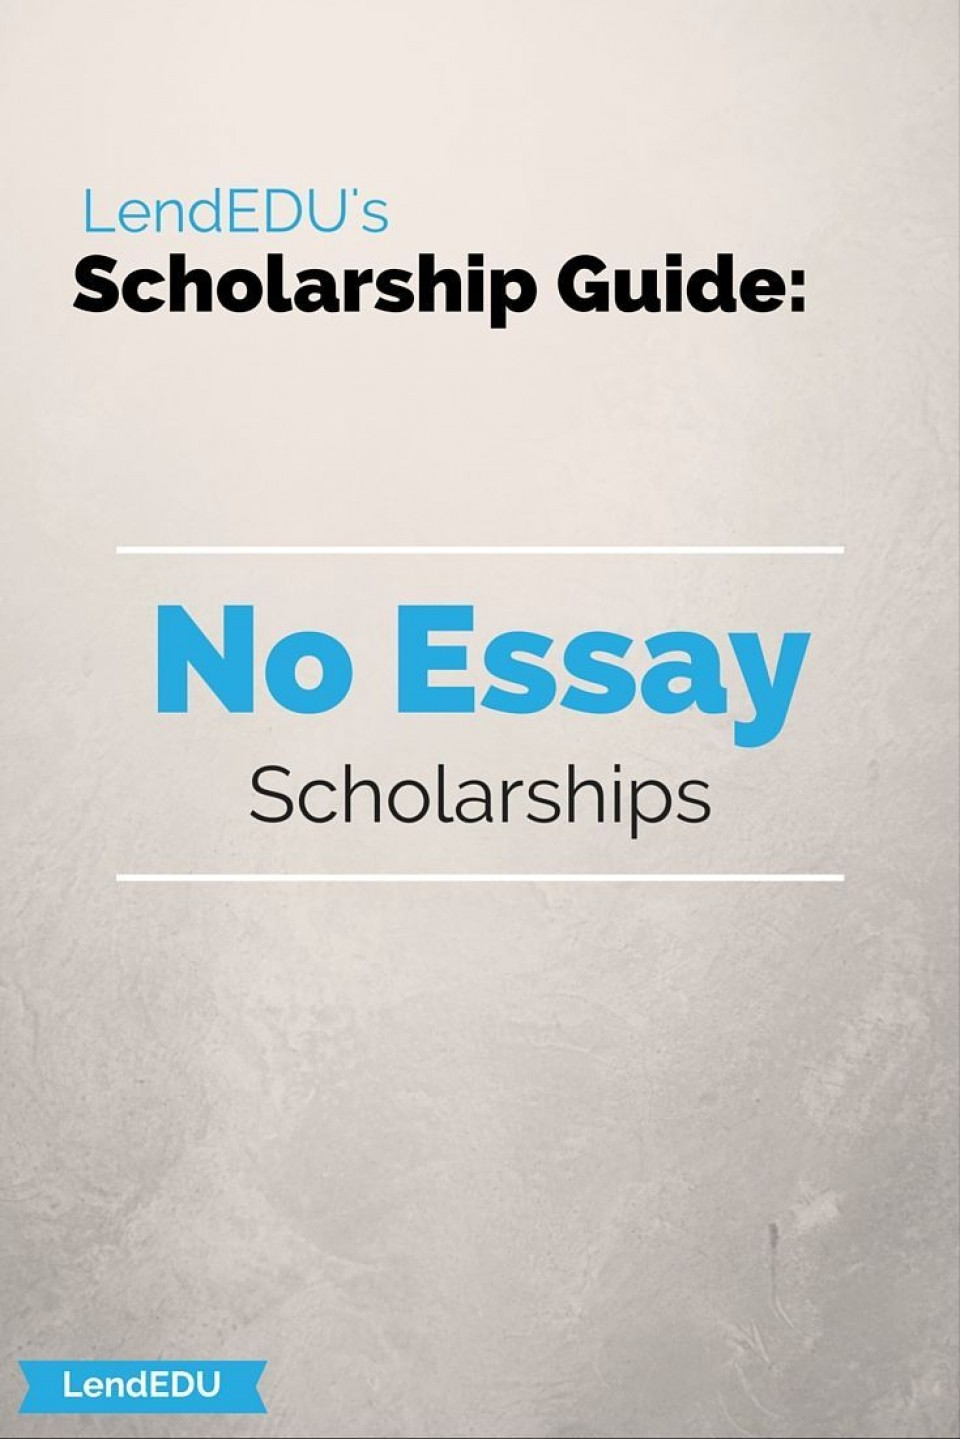 016 Essay Example No Scholarship Wondrous Scholarships 2019 Graduates For High School Seniors Applications 960